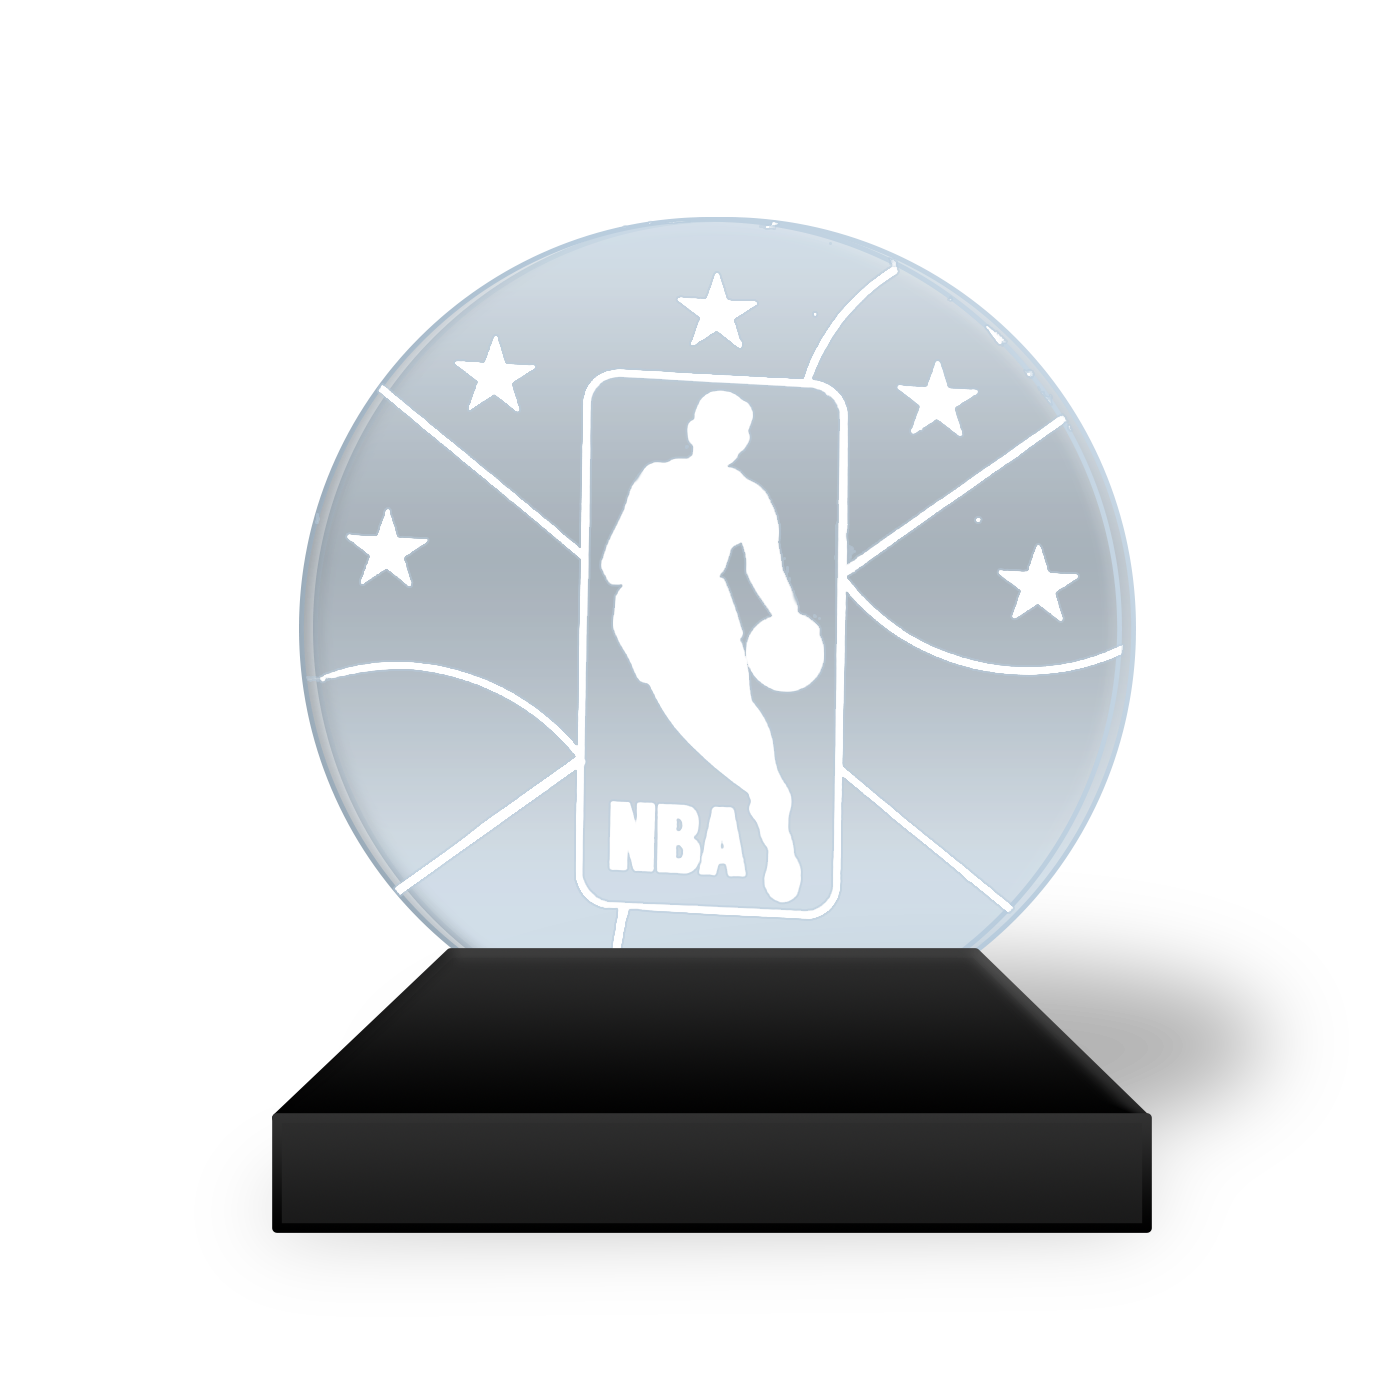 Nba mvp trophy png. All star game most